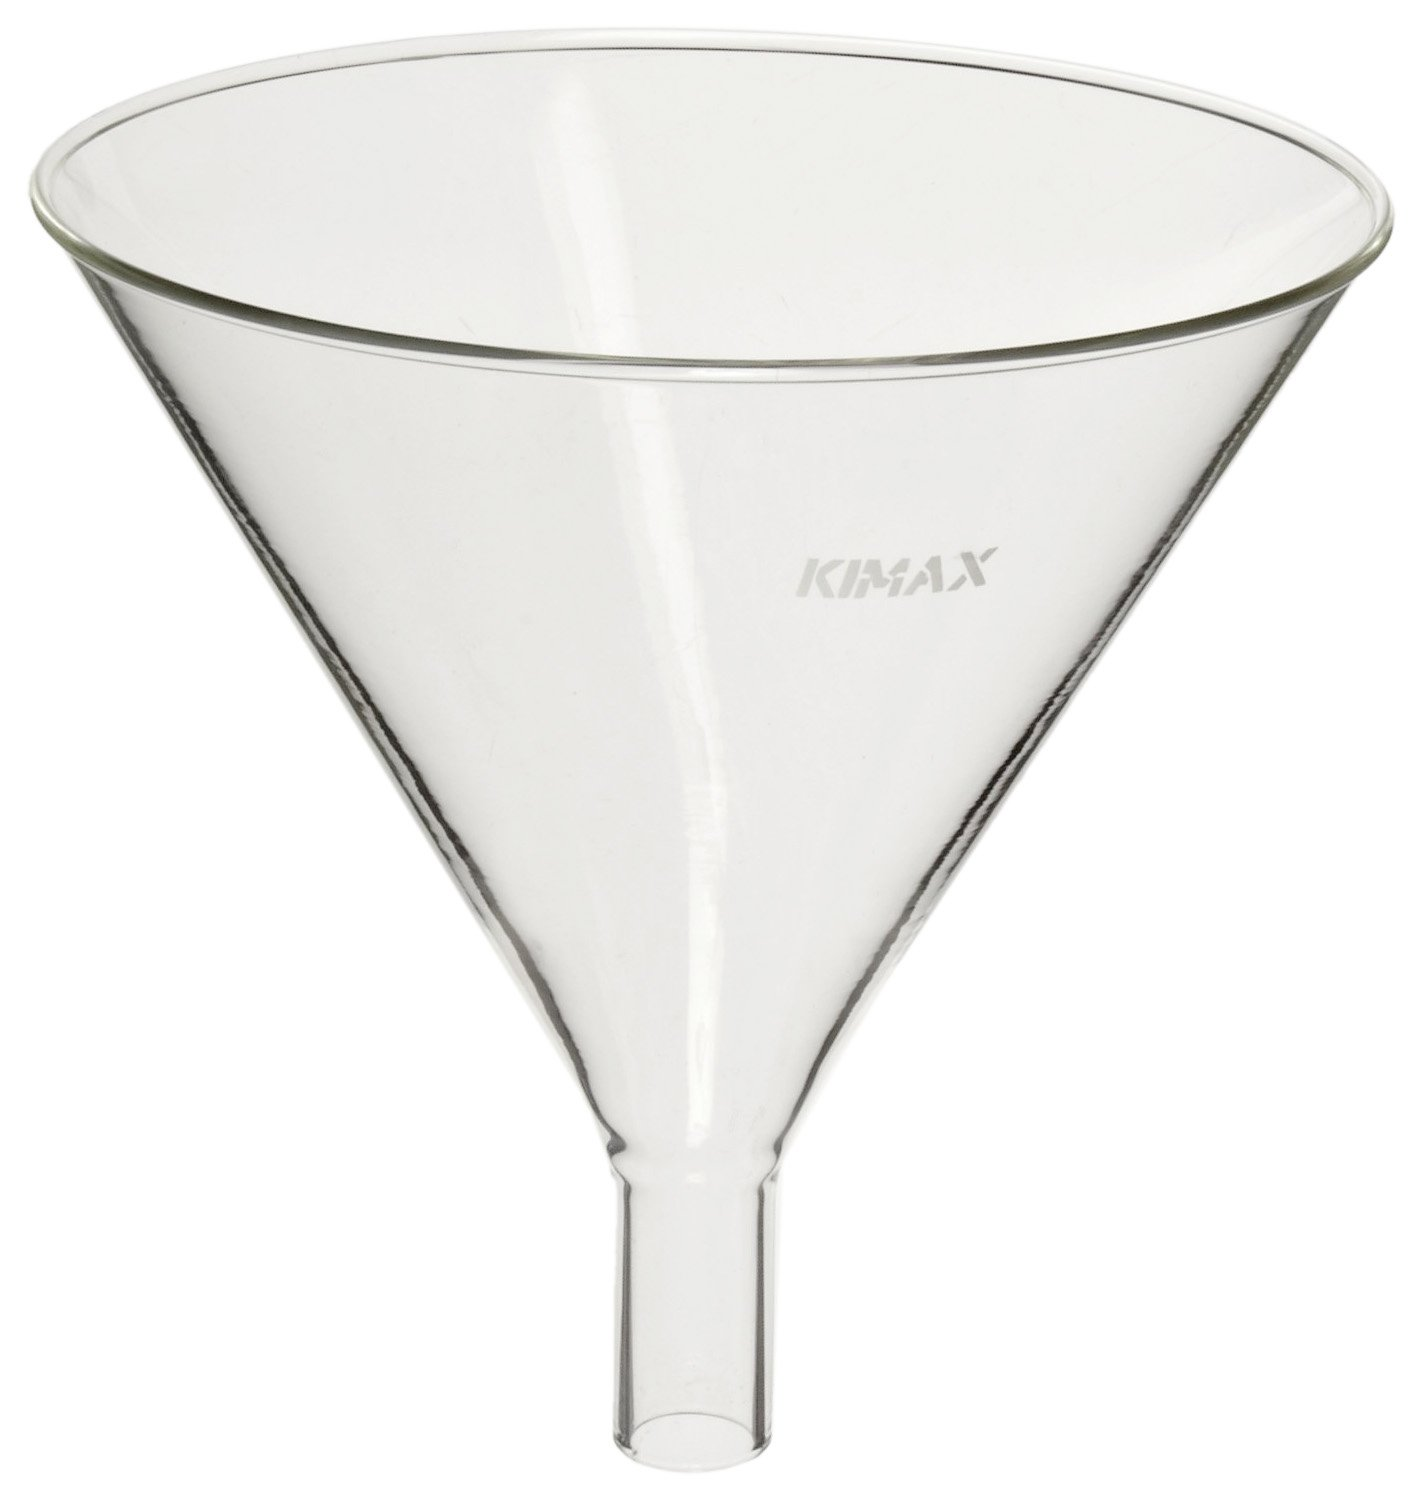 Kimble 29020-100 Glass Round Powder Filling Funnel, with 1.5'' Stem, 100mm Diameter (Pack of 6)